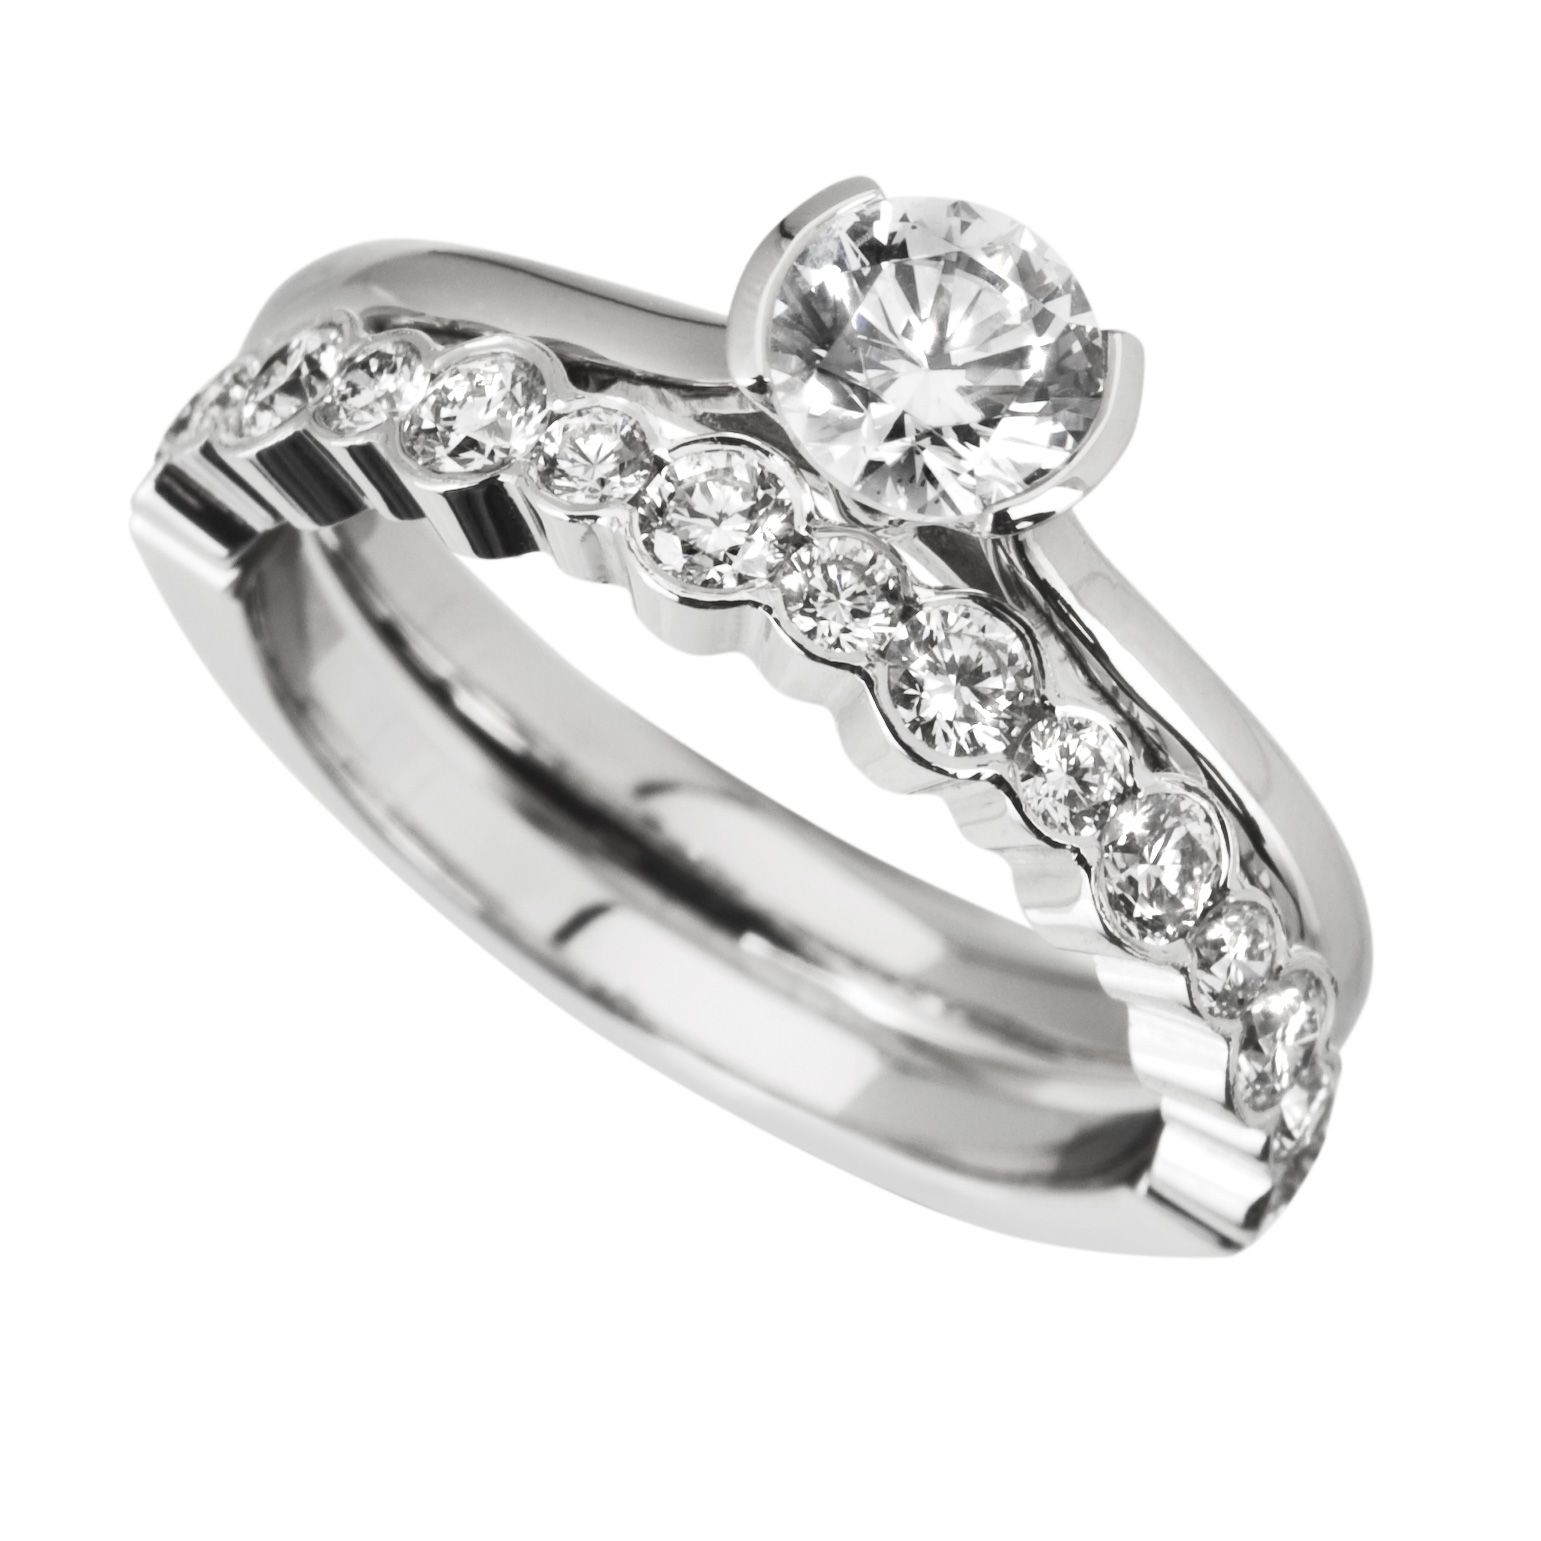 ring rings oval set bridal and matching cut shoulders engagement wedding platinum diamond channel with file